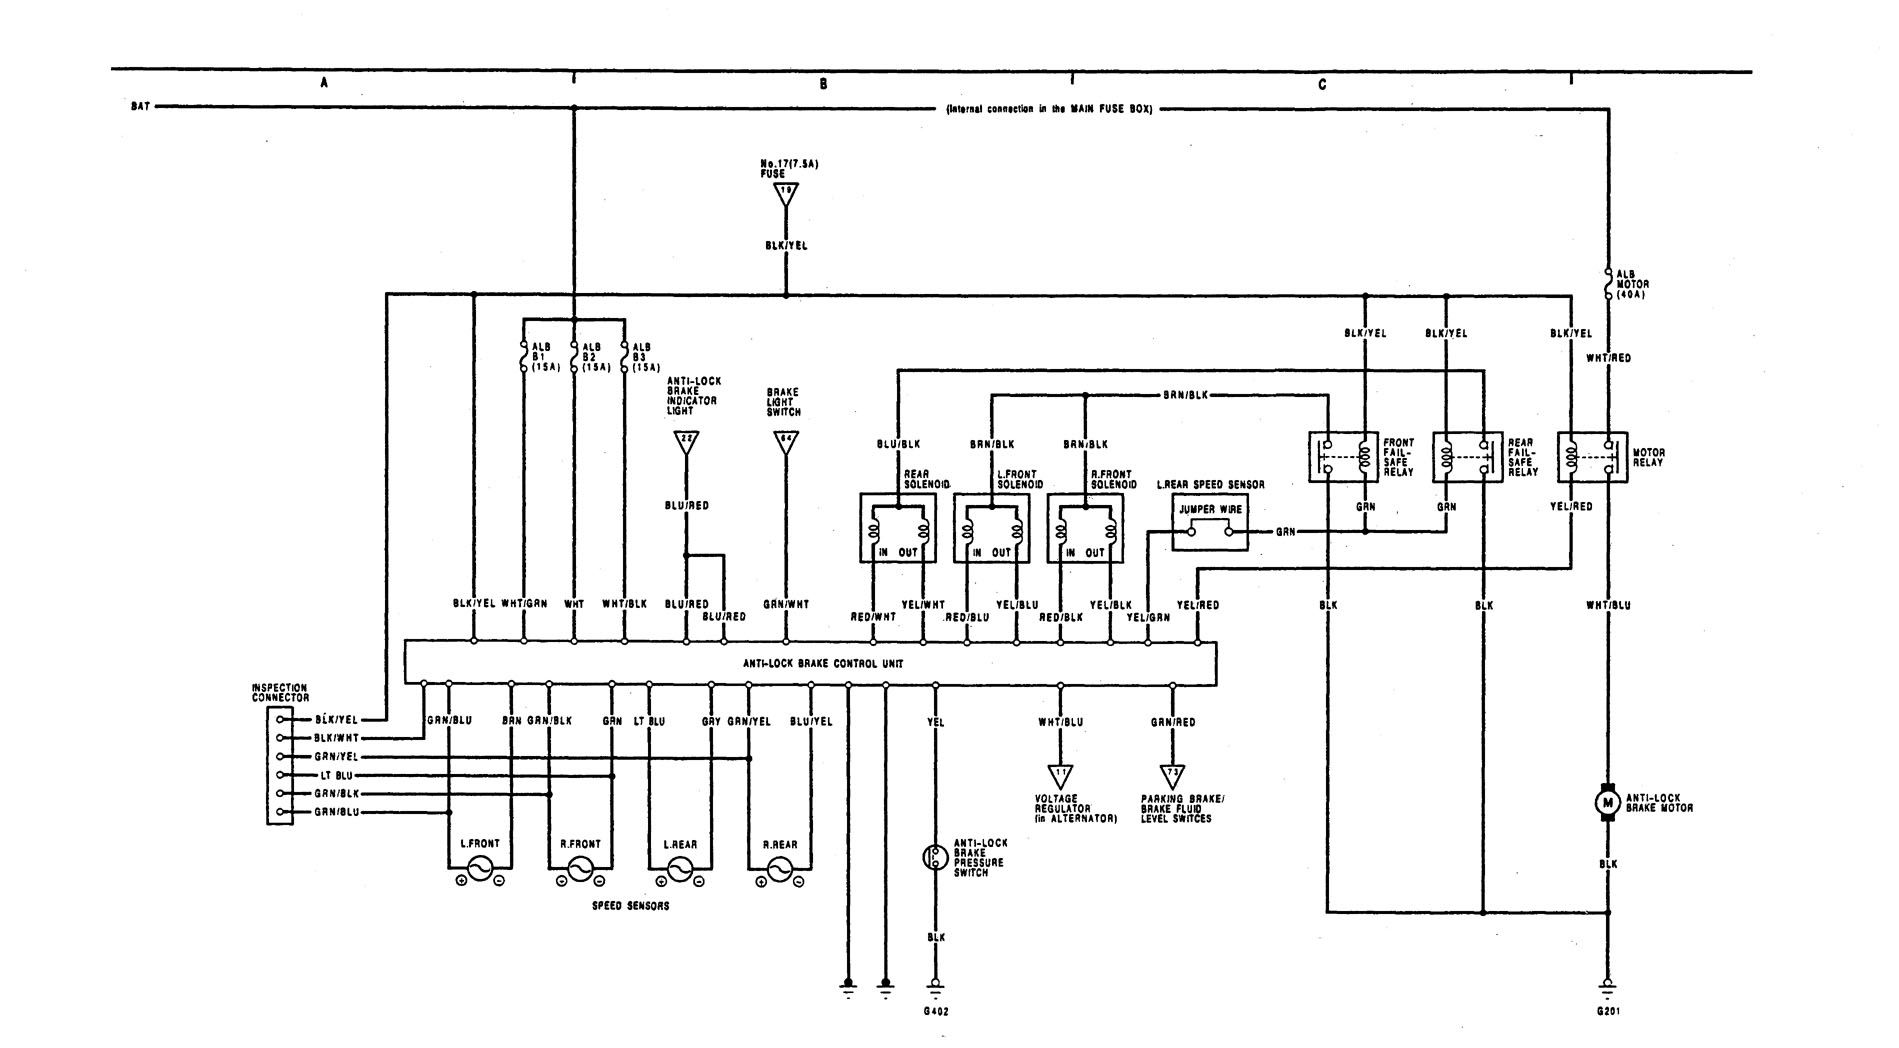 89 mustang 3g wiring diagram 89 mustang firing order Simple Wiring Schematics Automotive Wiring Schematics